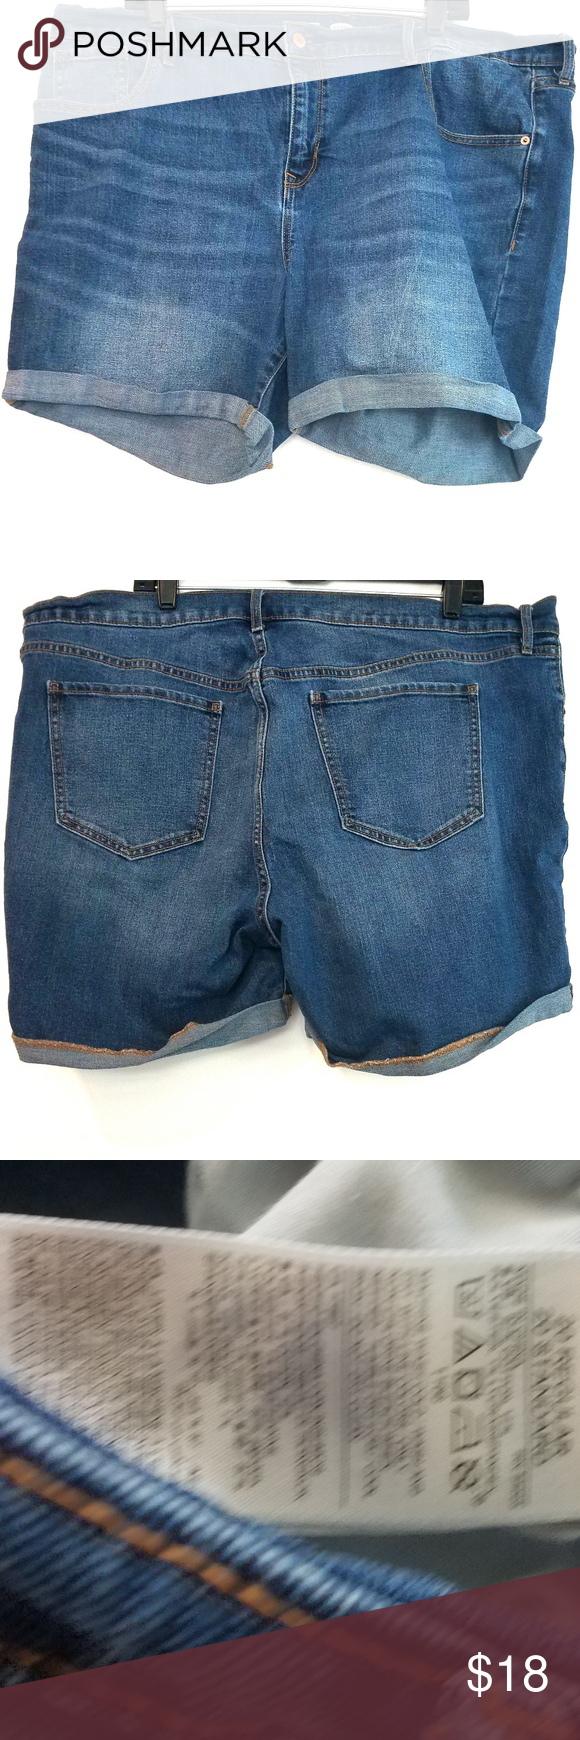 11d909bc38f 20 Old Navy Fitted Stretch Denim Jean Shorts These size 20 Old Navy Fitted  Stretch Denim Jean Shorts are in good used condition. Waist measures 22